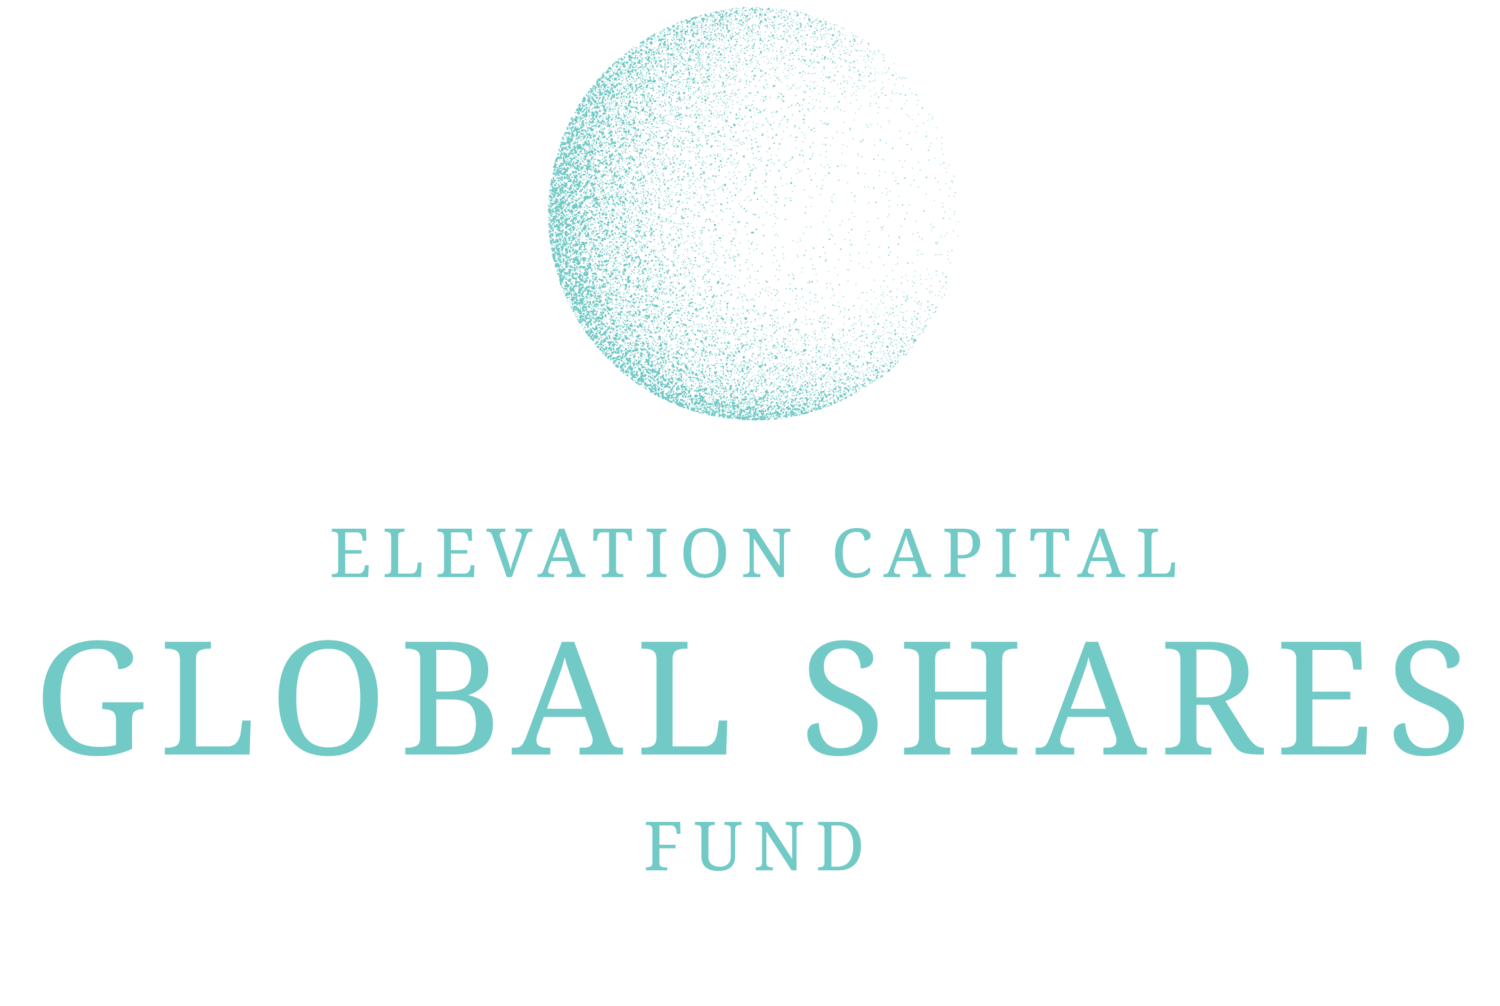 Elevation Capital Global Shares Fund